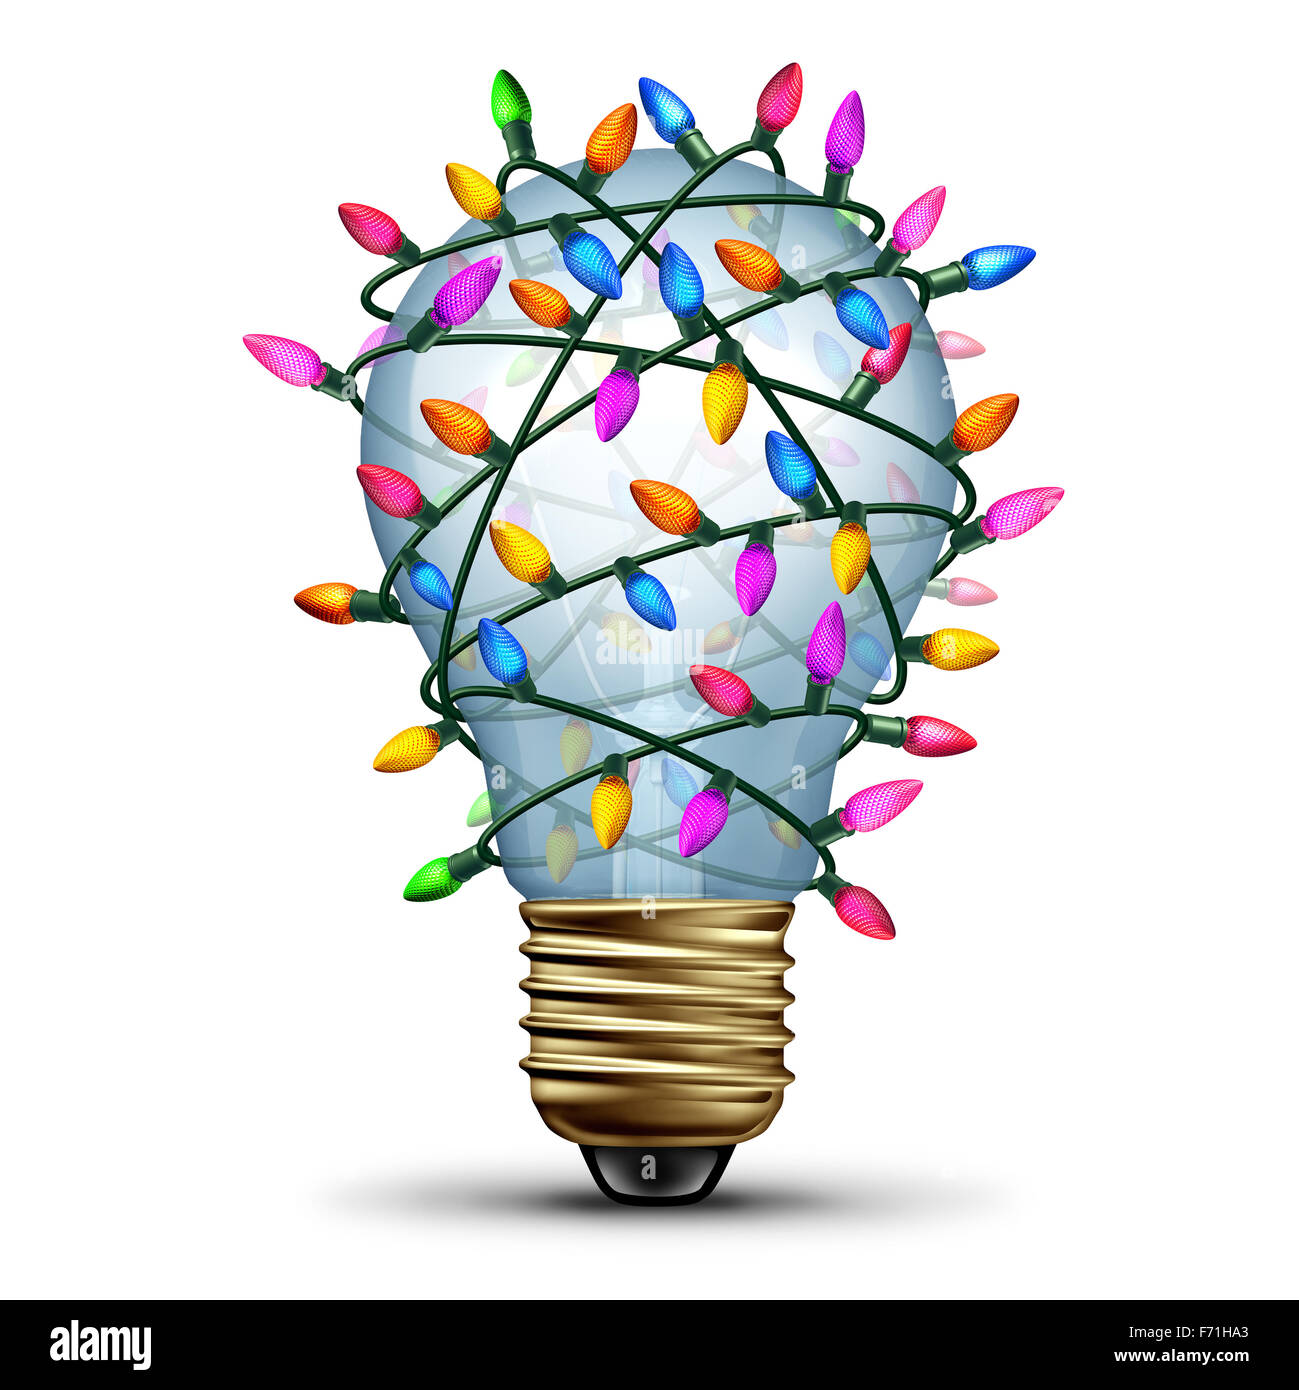 Bright holiday idea winter seasonal concept as a light bulb wrapped with christmas lights as a festive symbol for - Stock Image